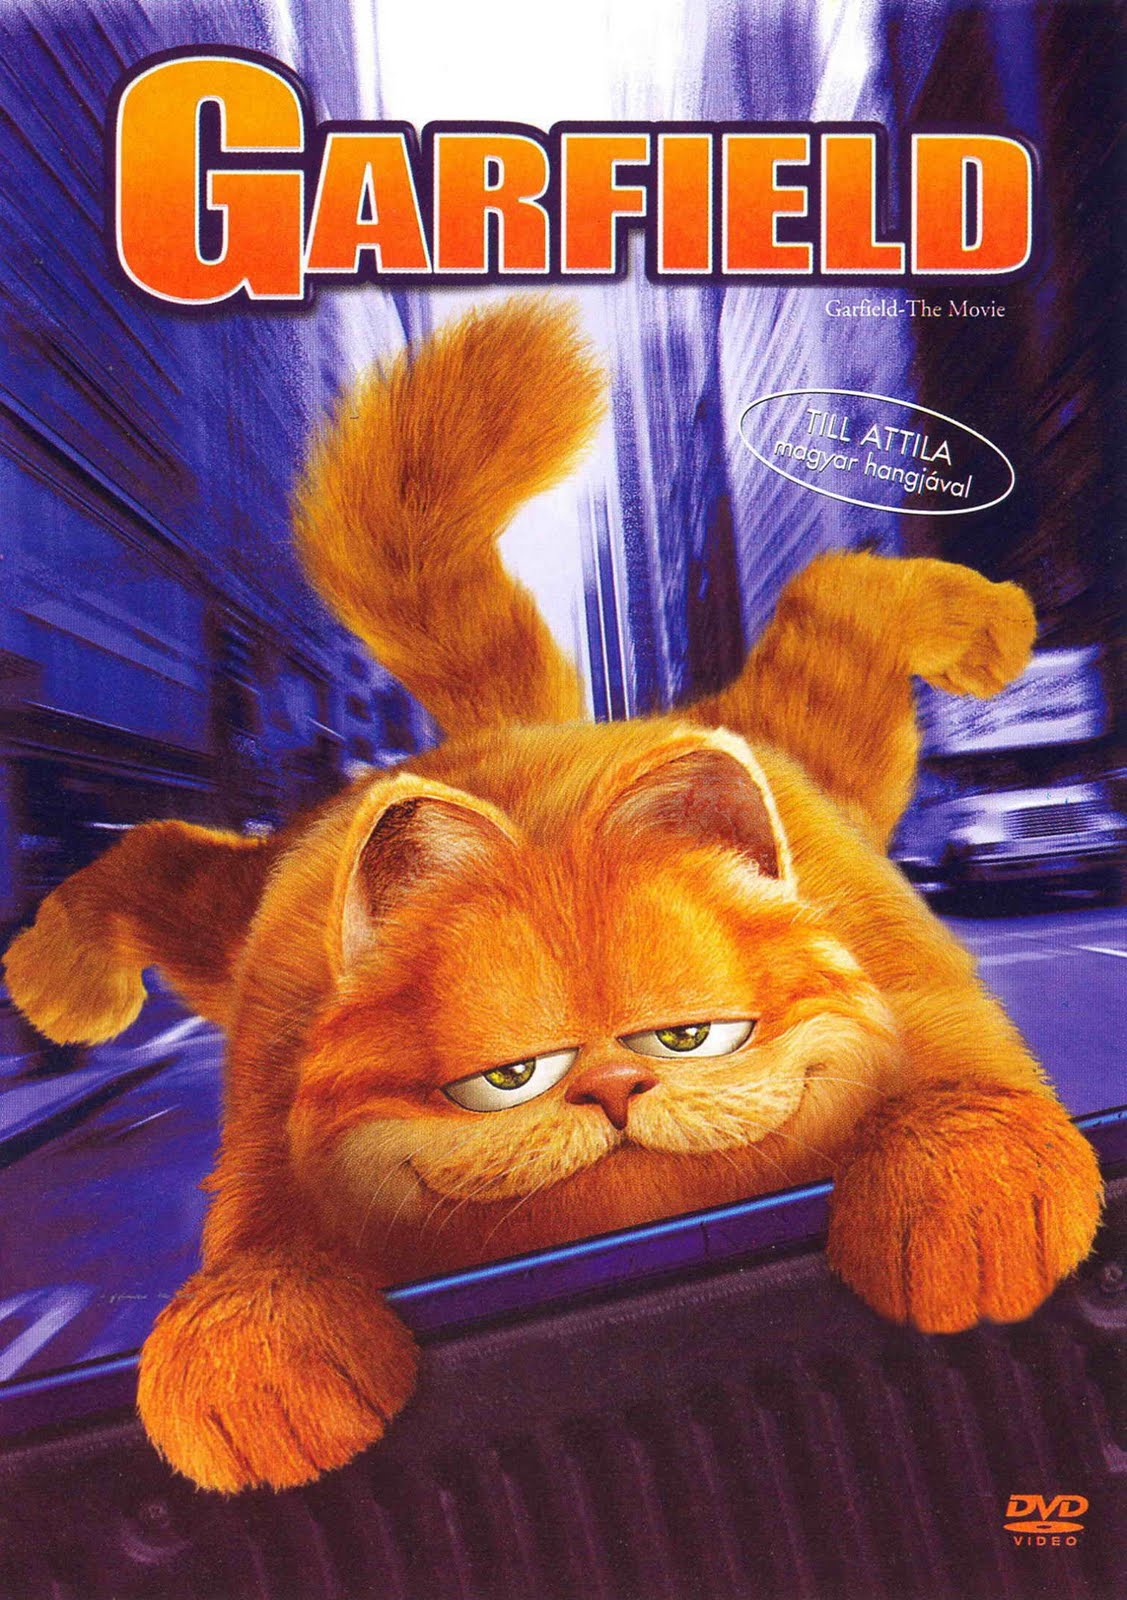 garfield_movie_04.jpg bet at home kredyty startowe 50 euro